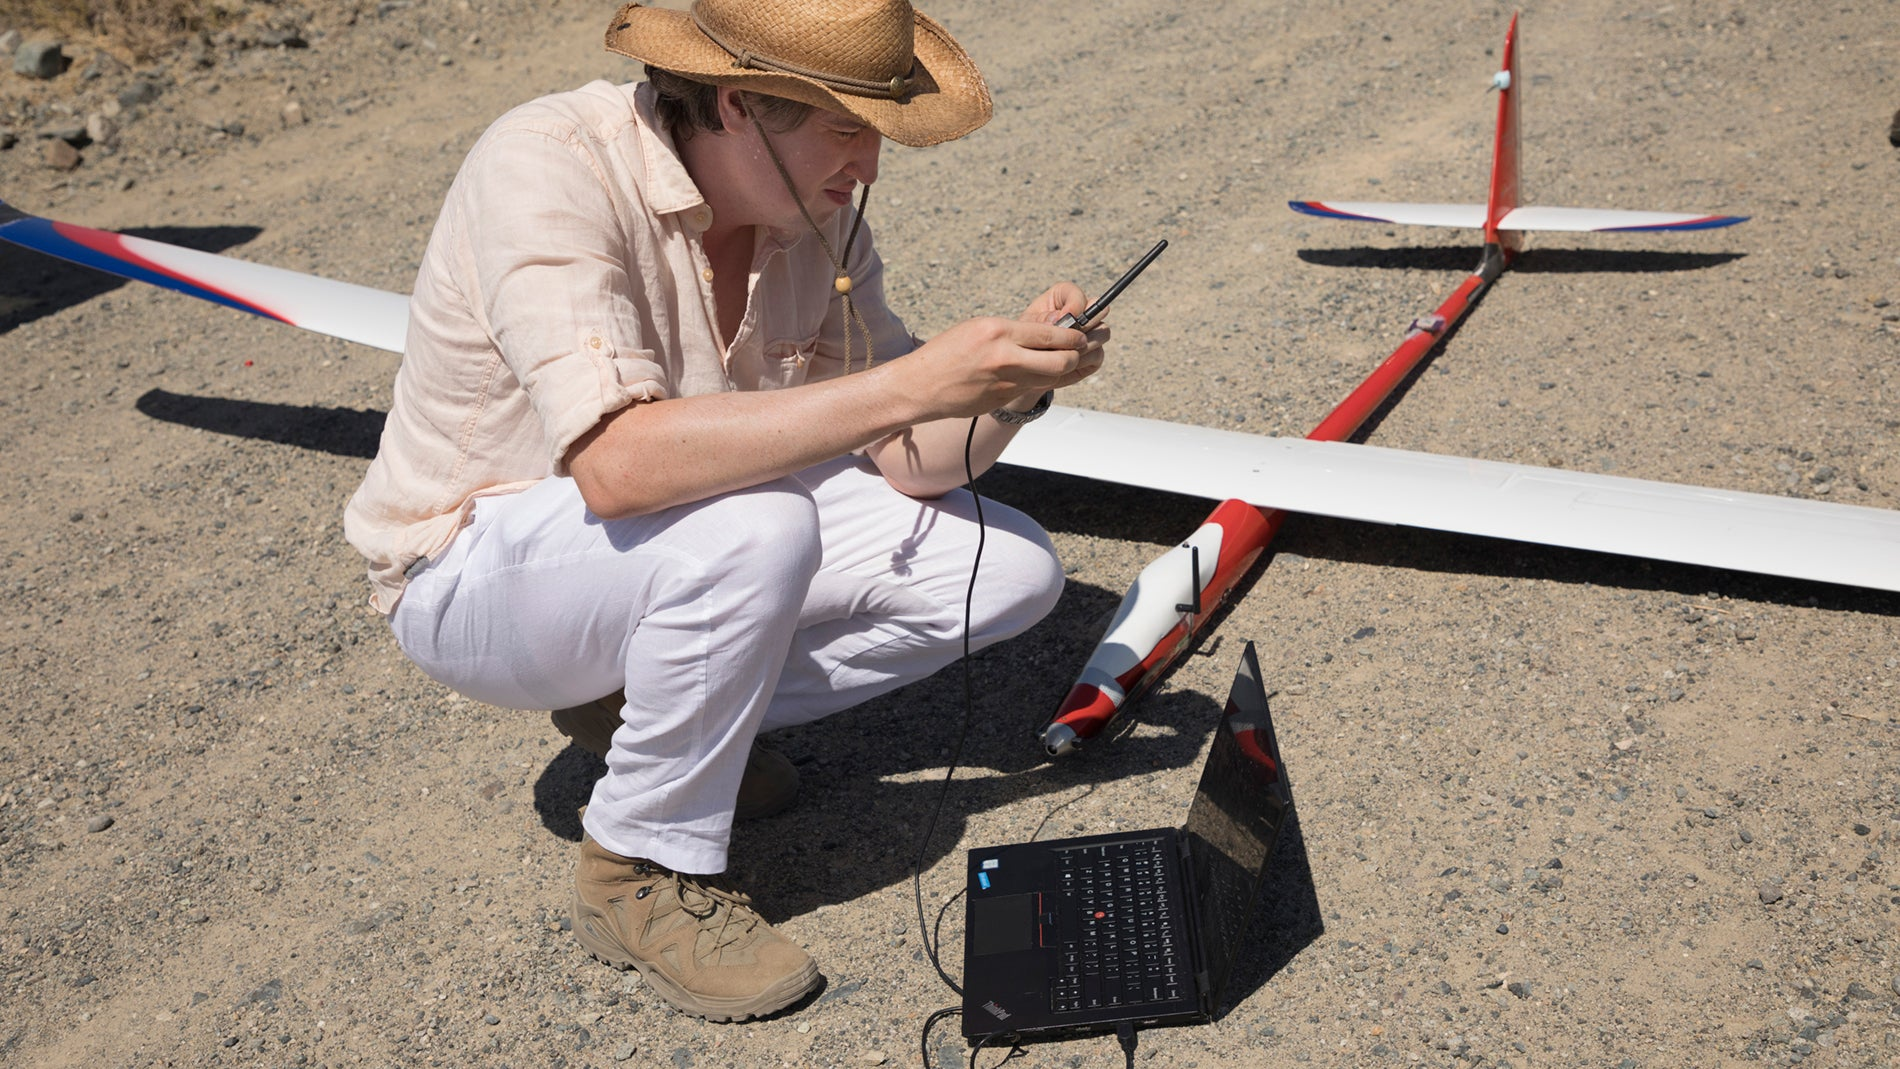 Borrowing A Clever Trick From Birds, This Smart Glider Could One Day Fly Forever Without A Motor